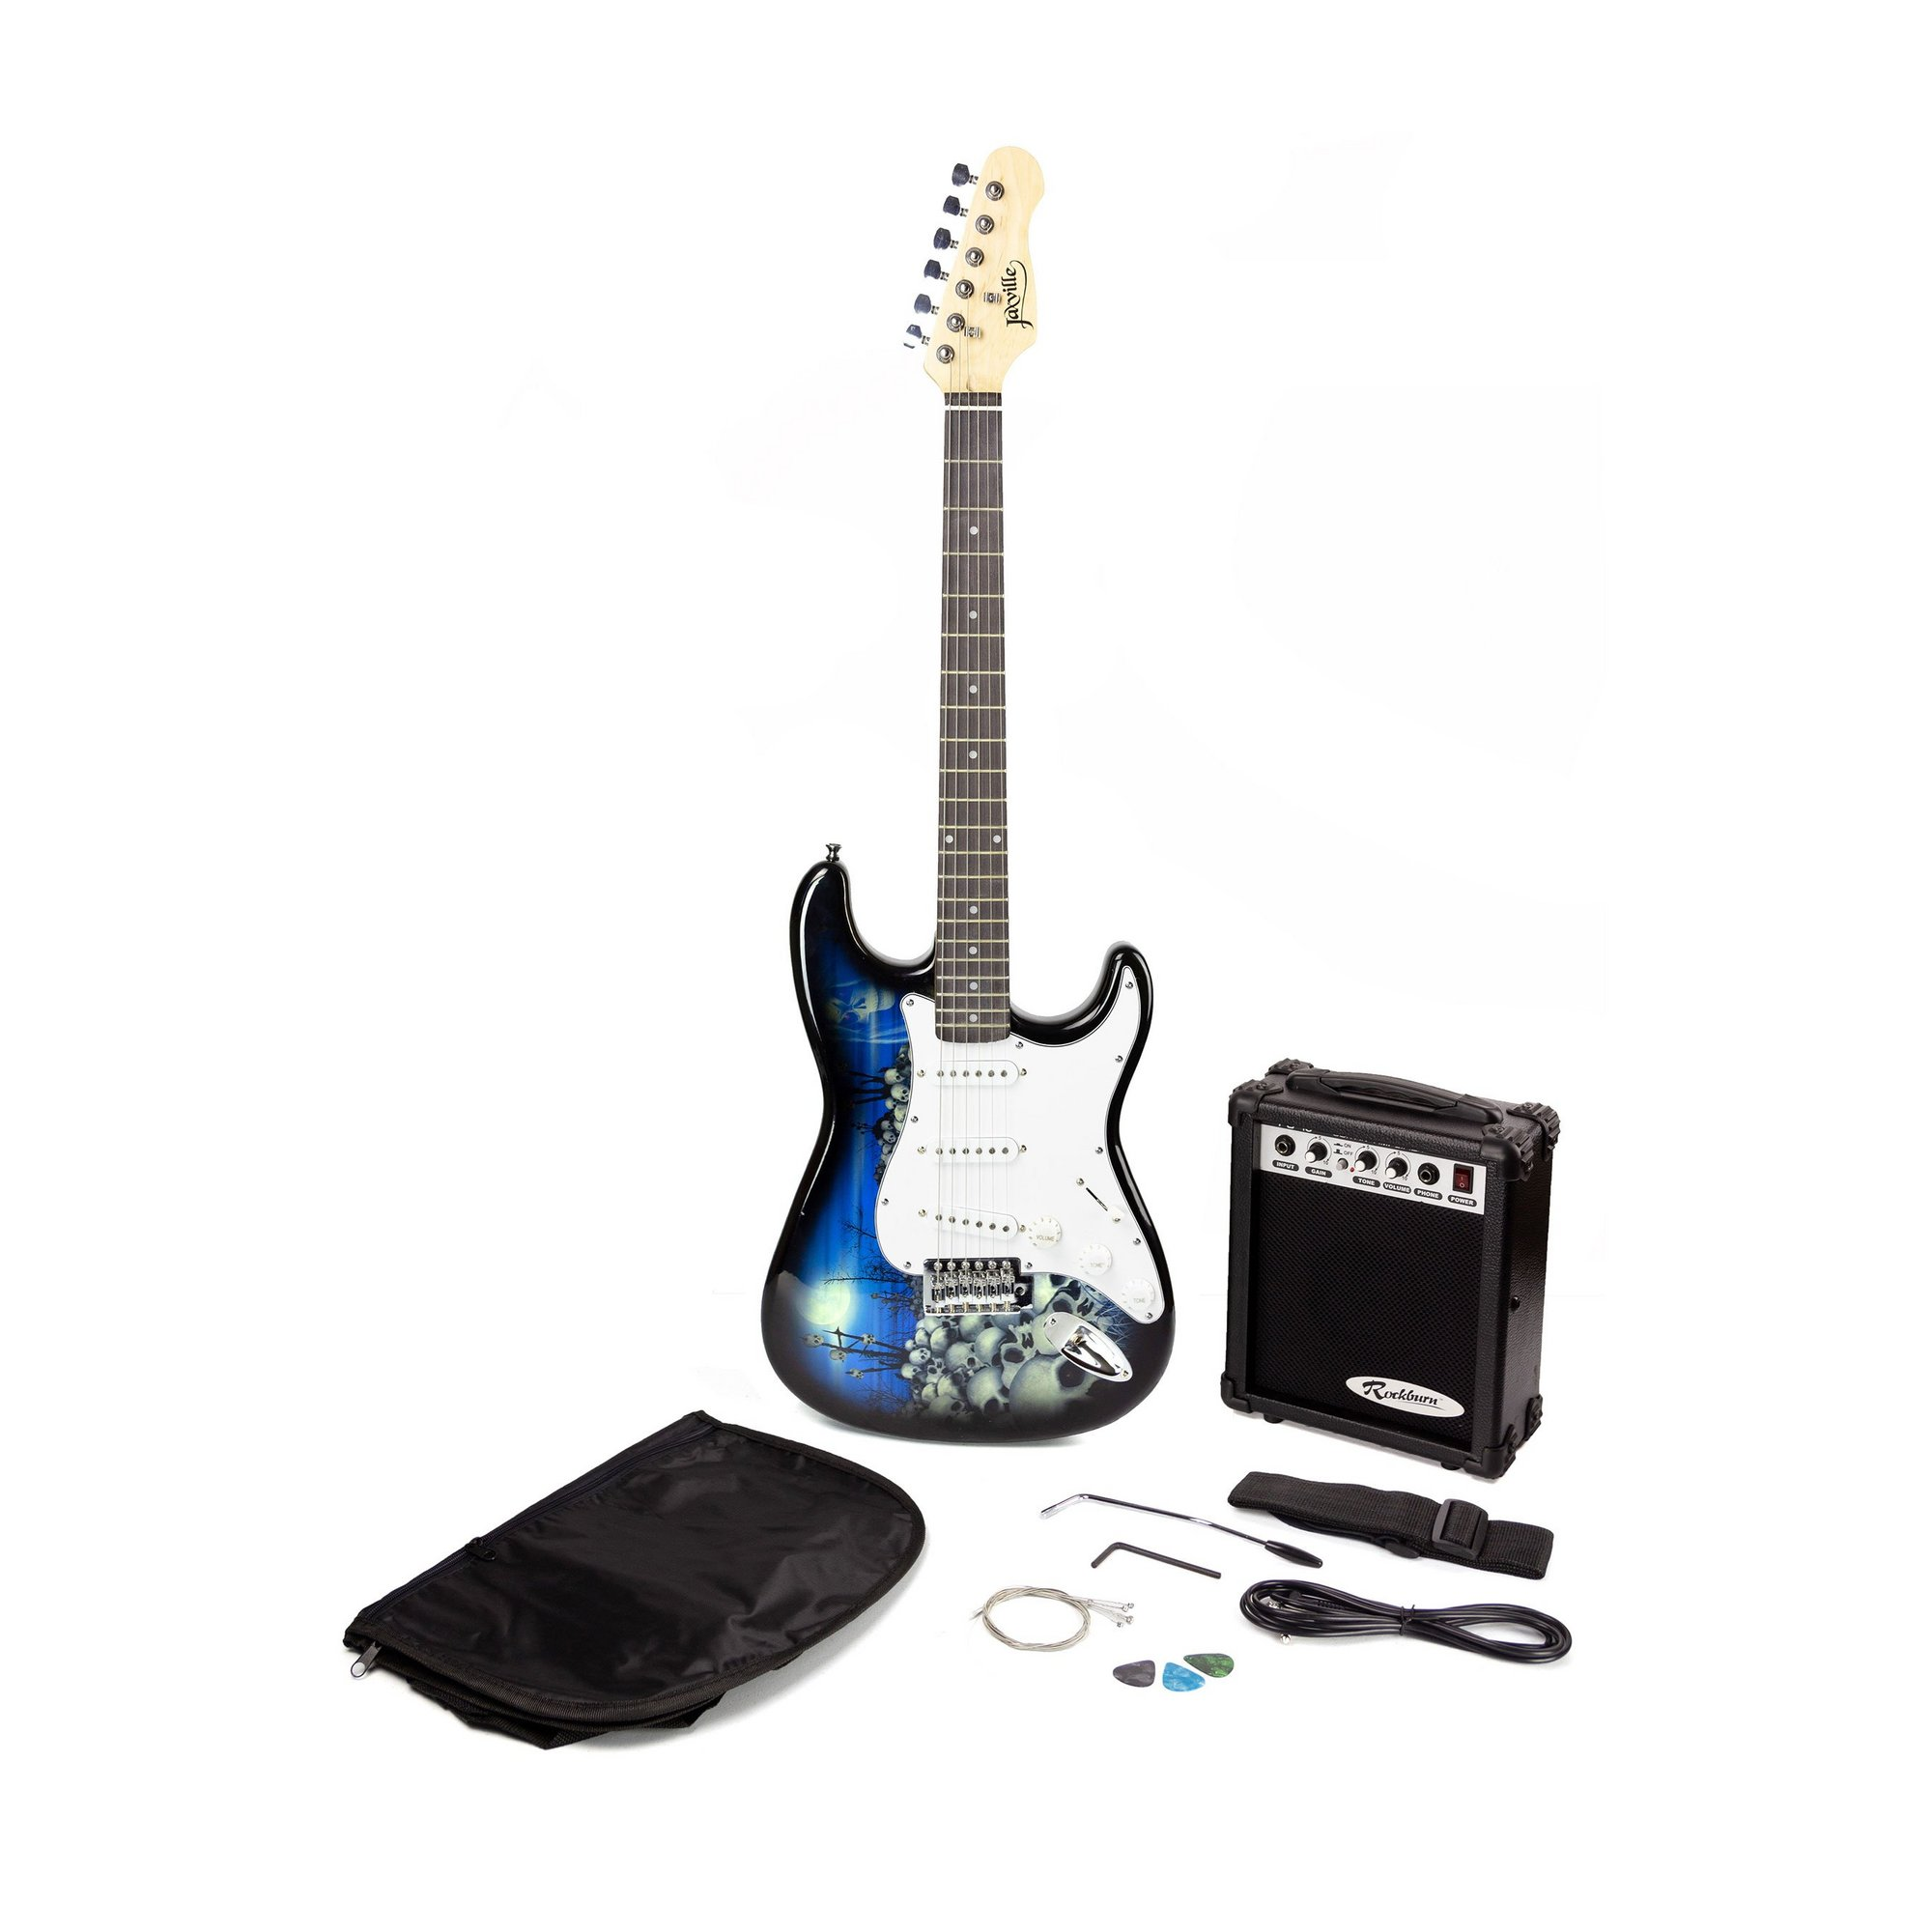 Image of Jaxville Electric Guitar Package - Reaper